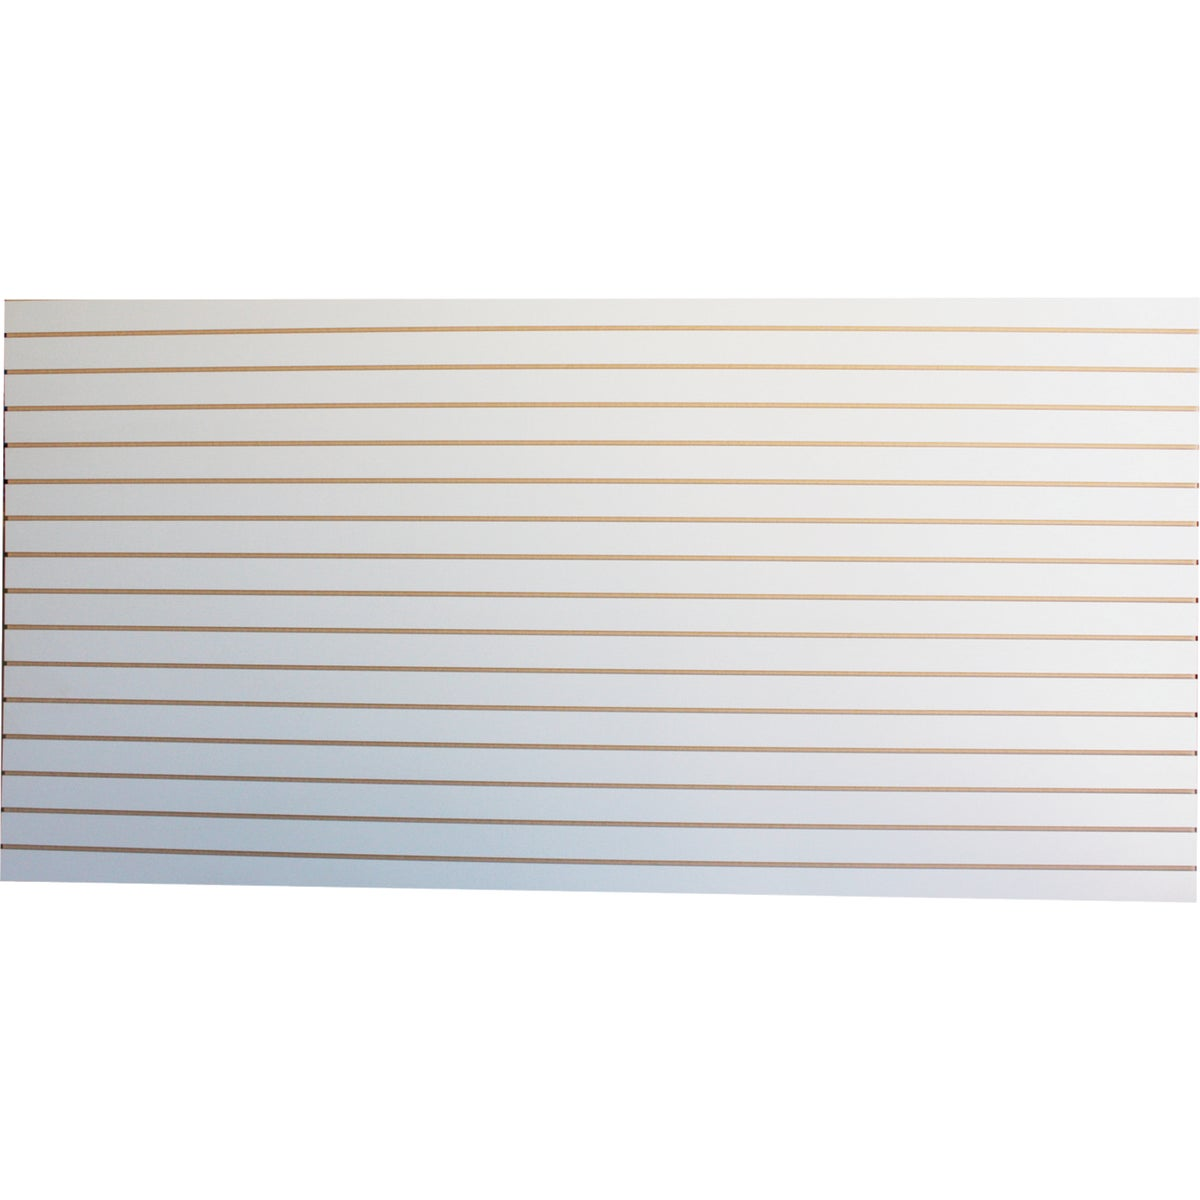 4X8 WHITE SLATWALL - GLLIW01-03S-000 by Garage Escape